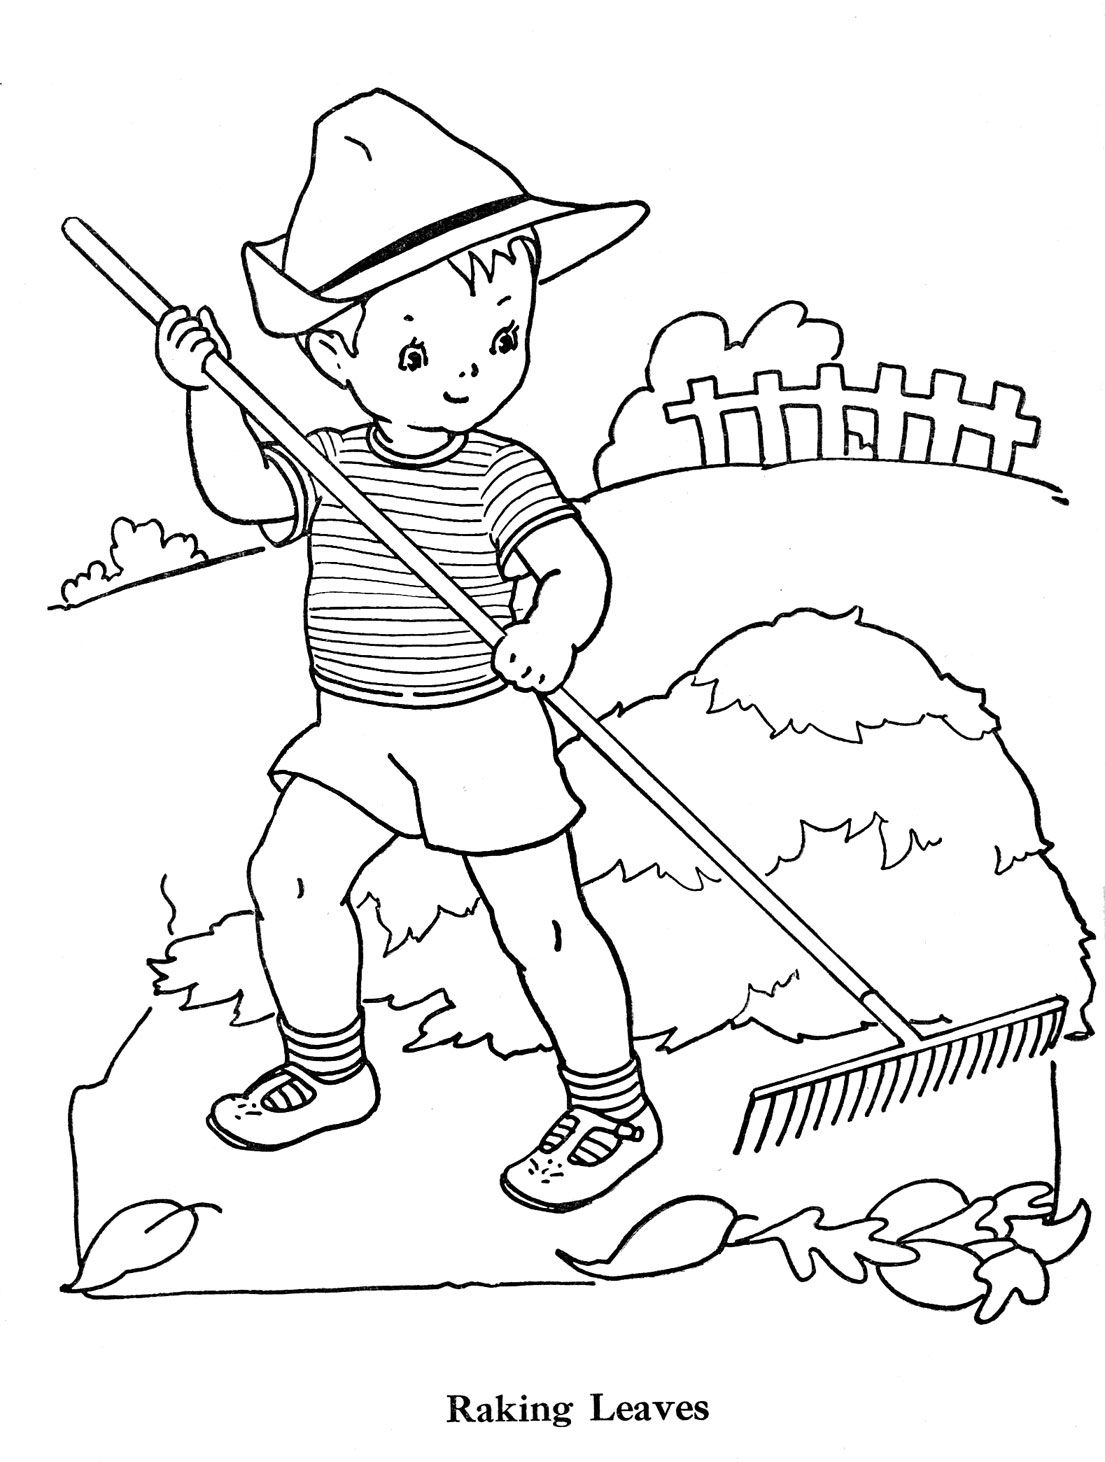 Jls colouring pages to print - Find This Pin And More On Autumn Coloring Pages